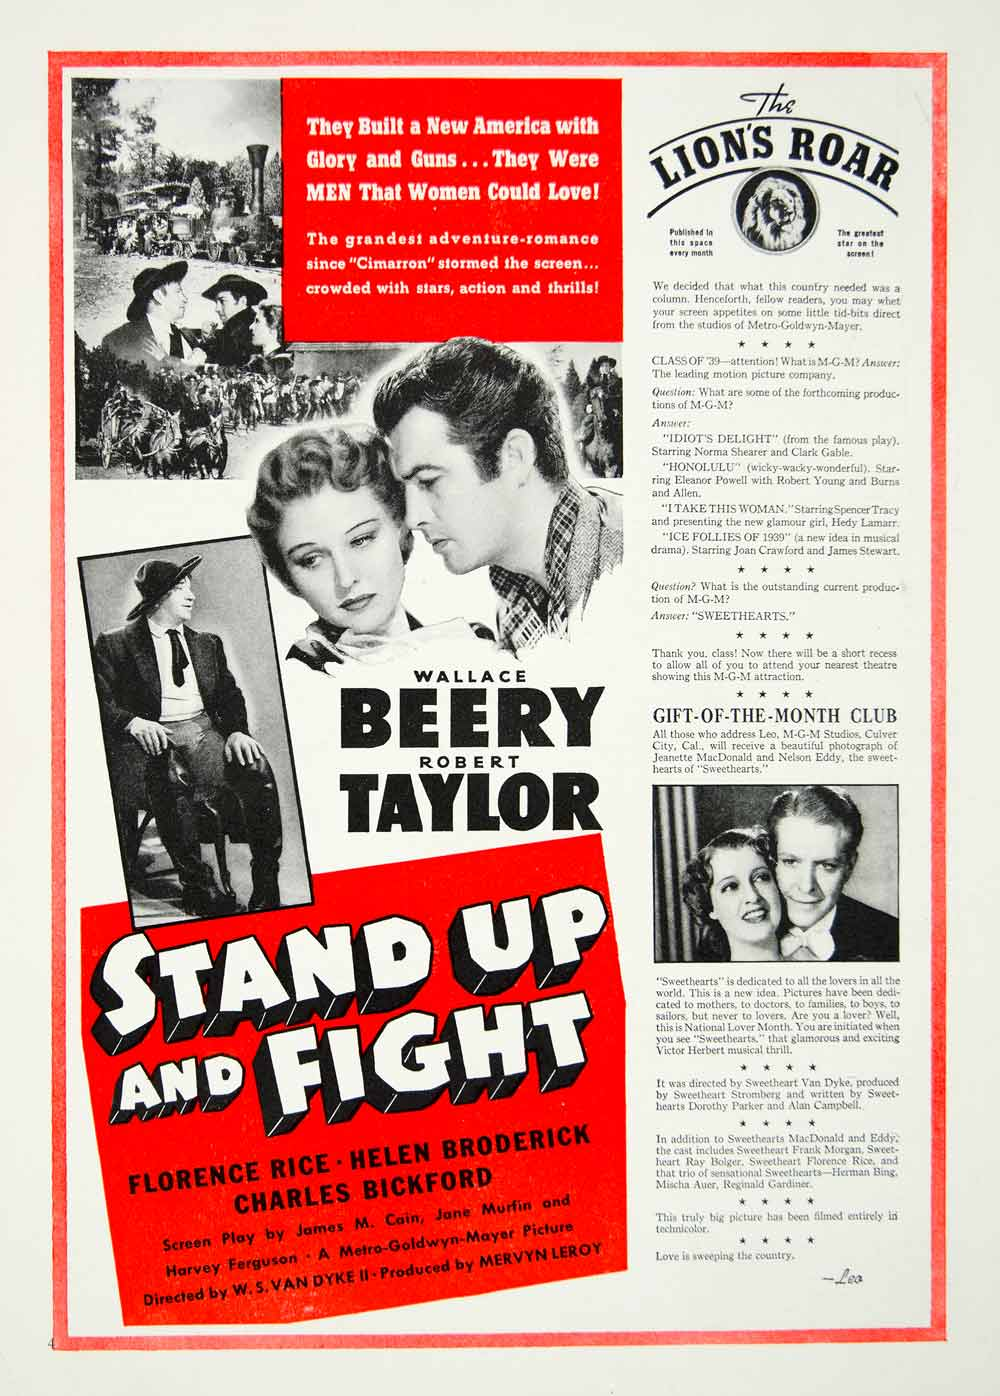 stand up and fight essay How to stand up for human rights in the age of trump especially when commercial opportunities and the fight against this essay summarizes his introduction to.